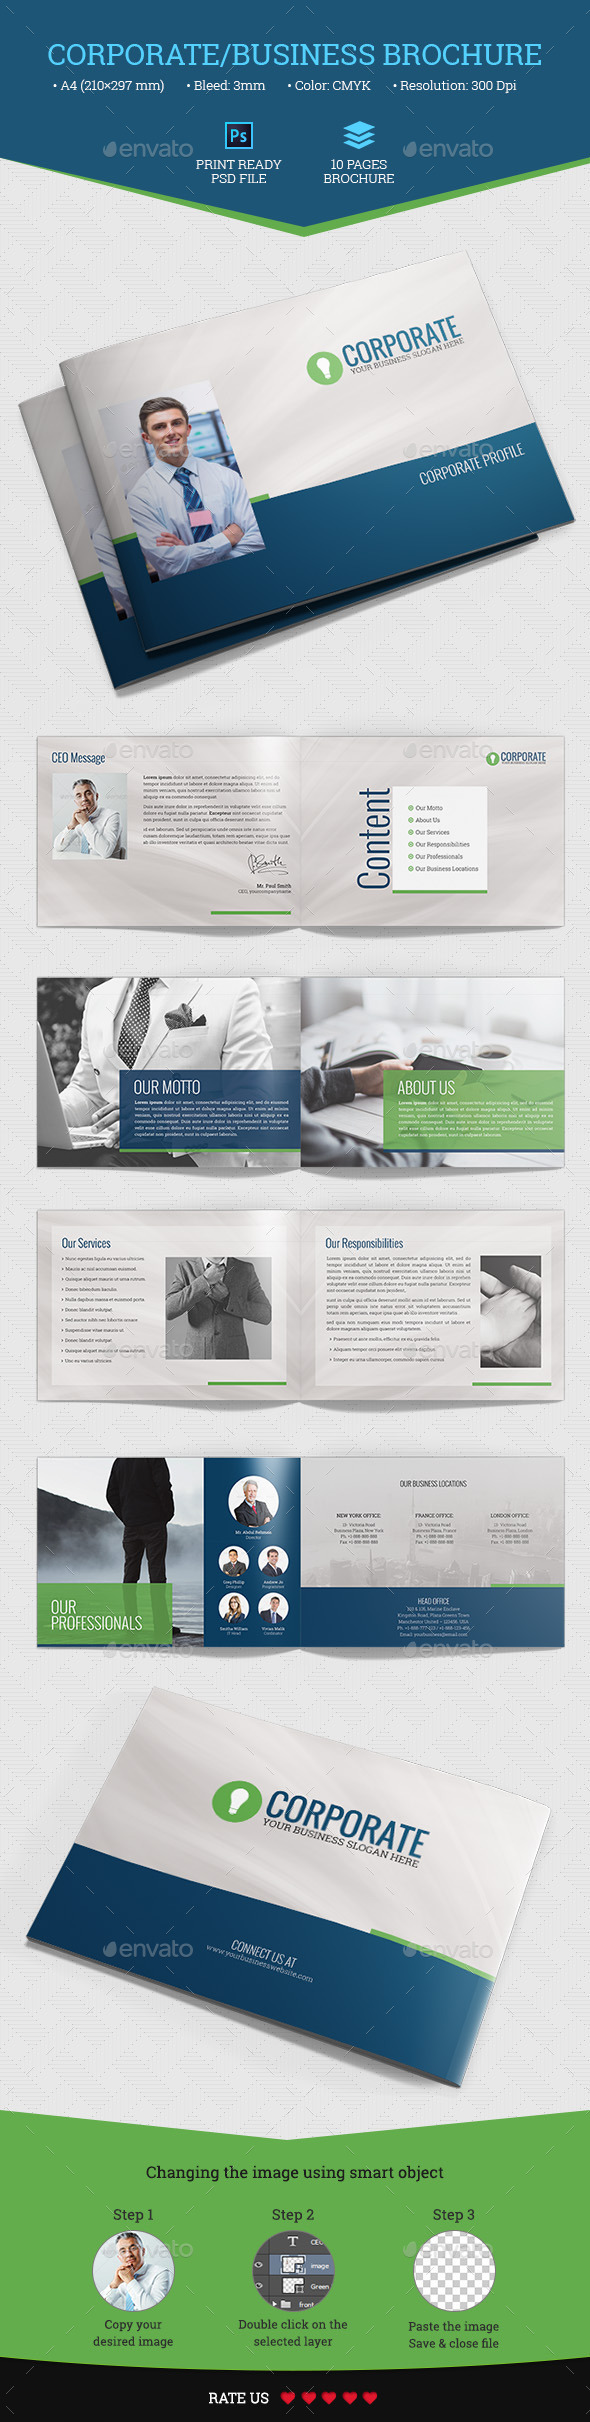 Corporate/Business Brochure - Corporate Brochures